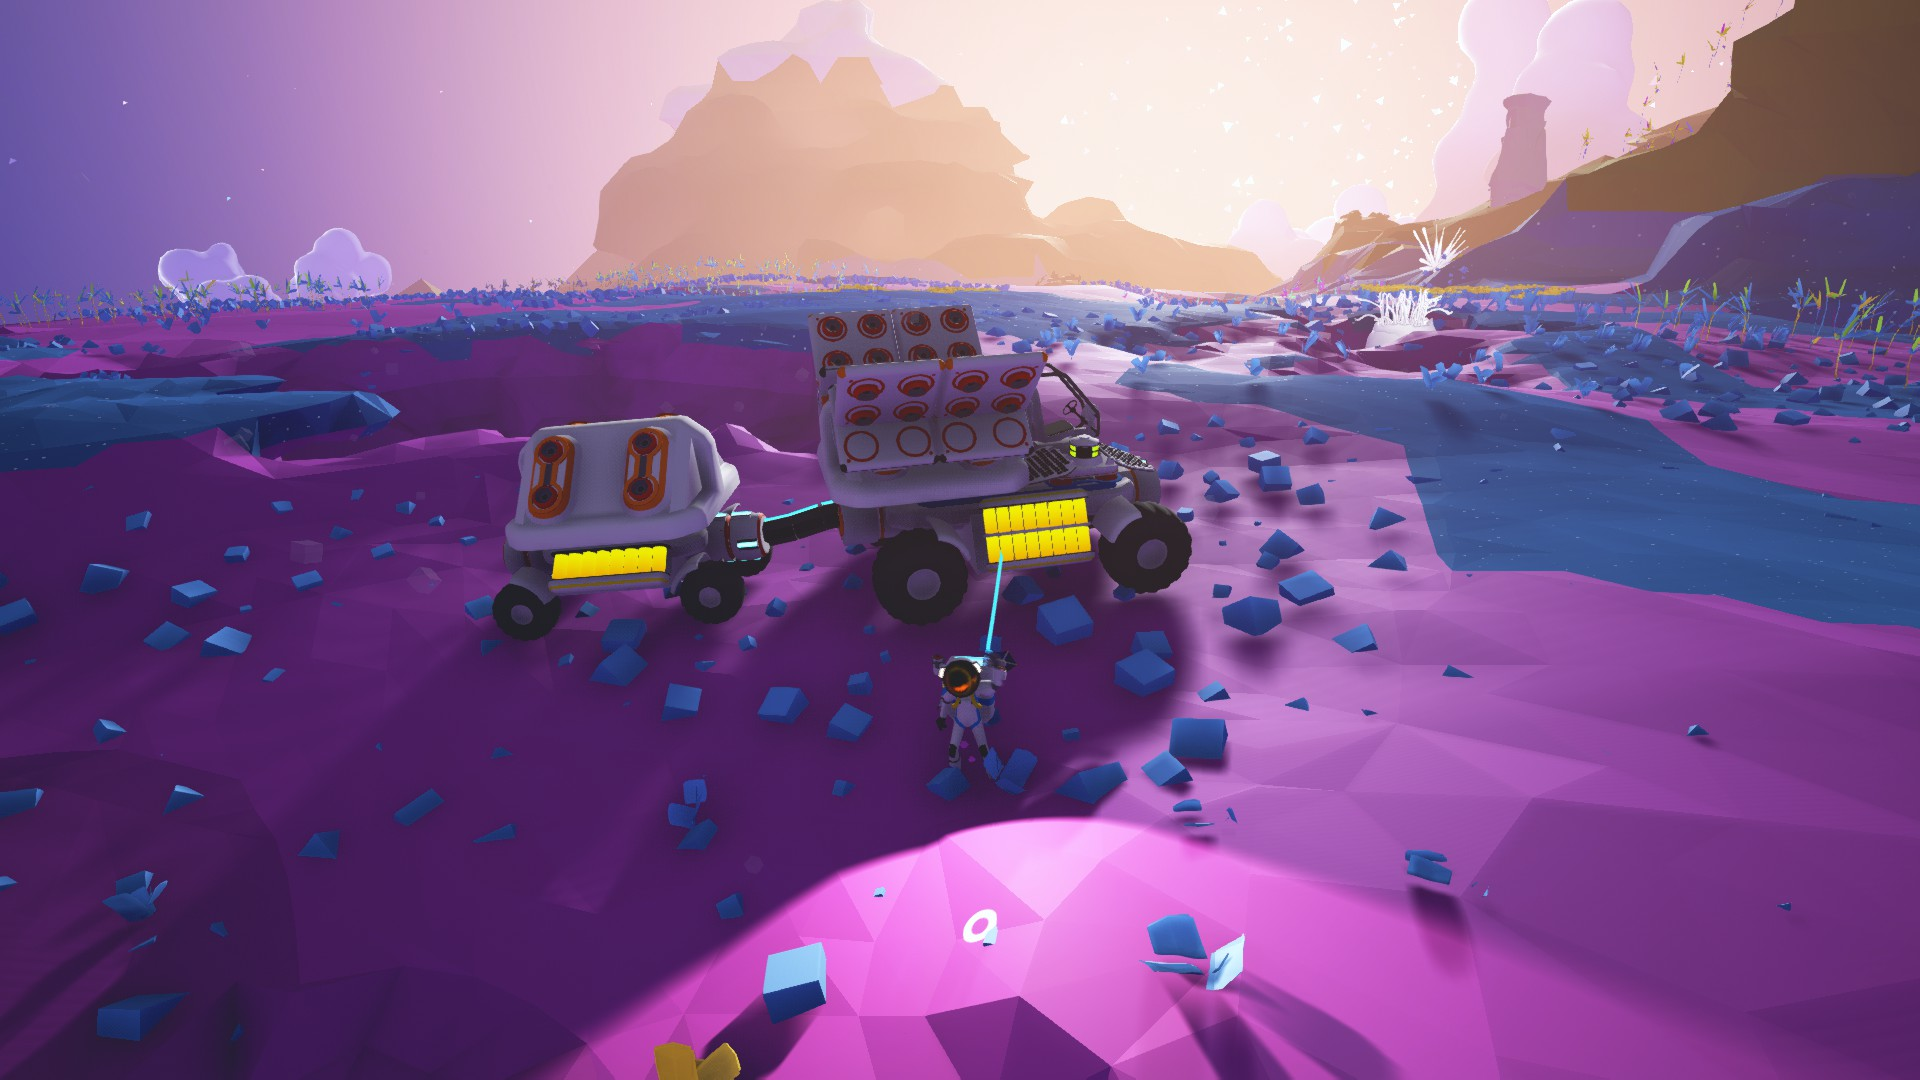 tg/Station 13 • View topic - Astroneer - Four player Co-op